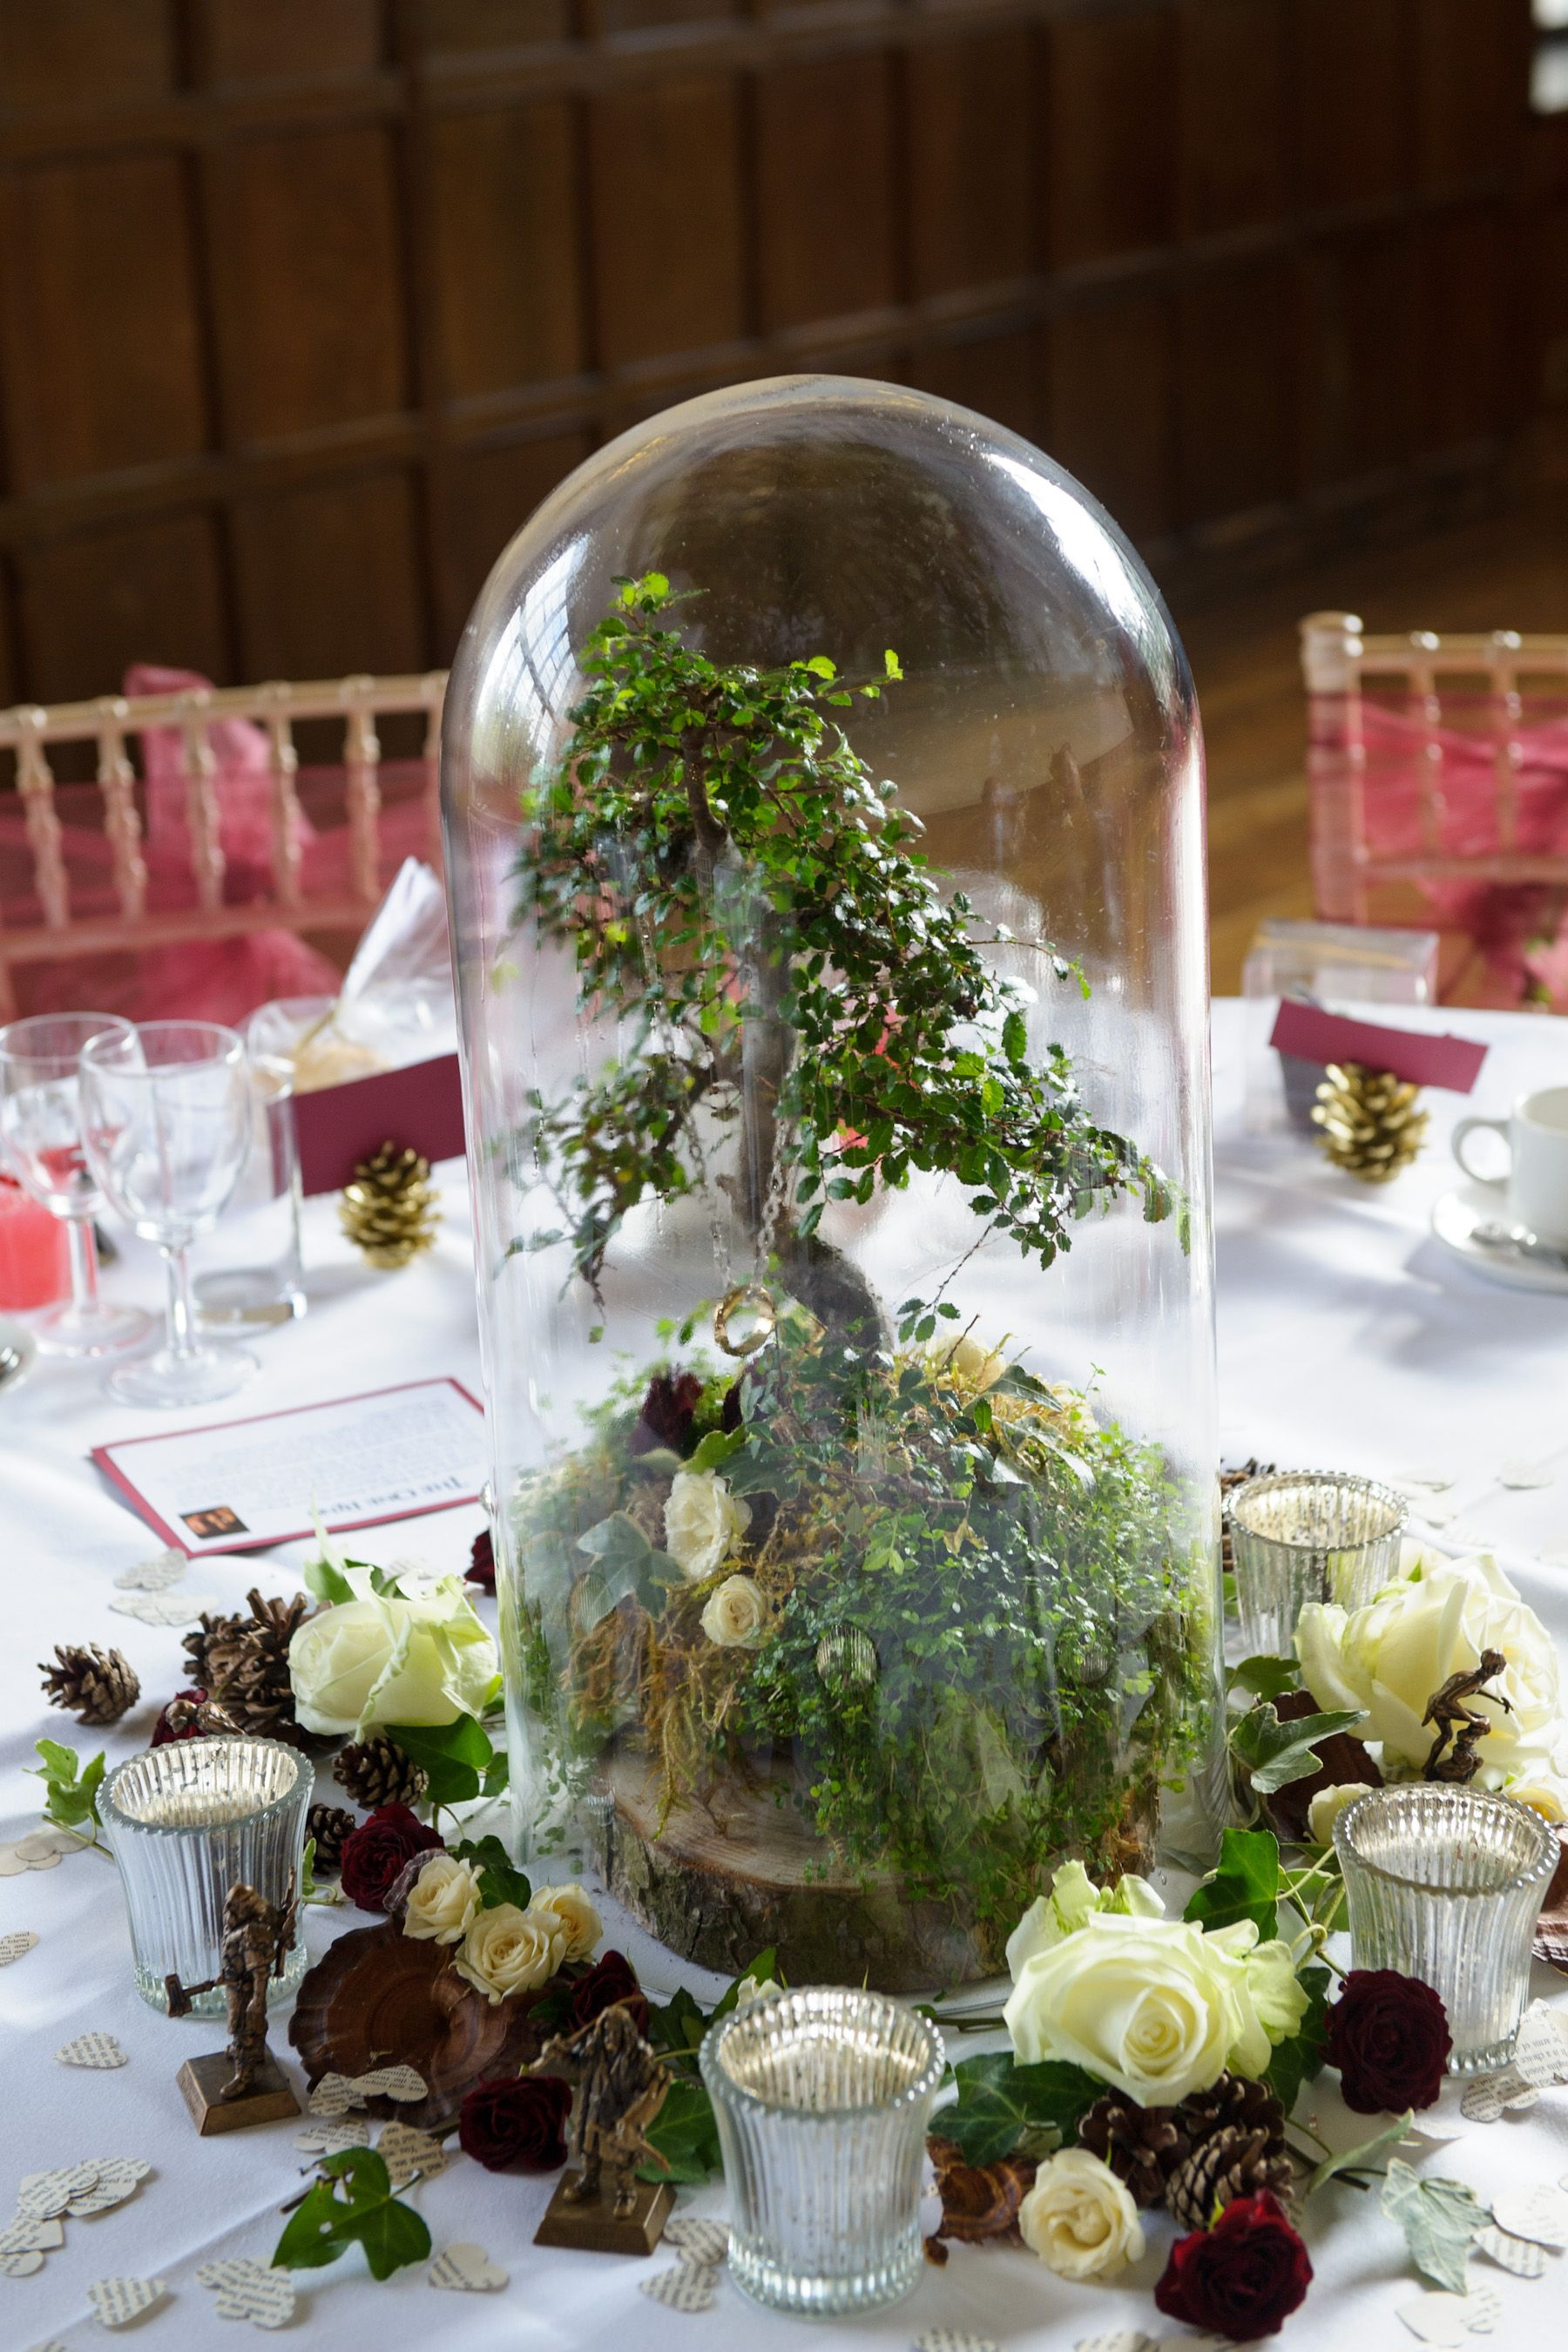 Pin By Cj On Wedding Decorations Pinterest Middle Earth Lord